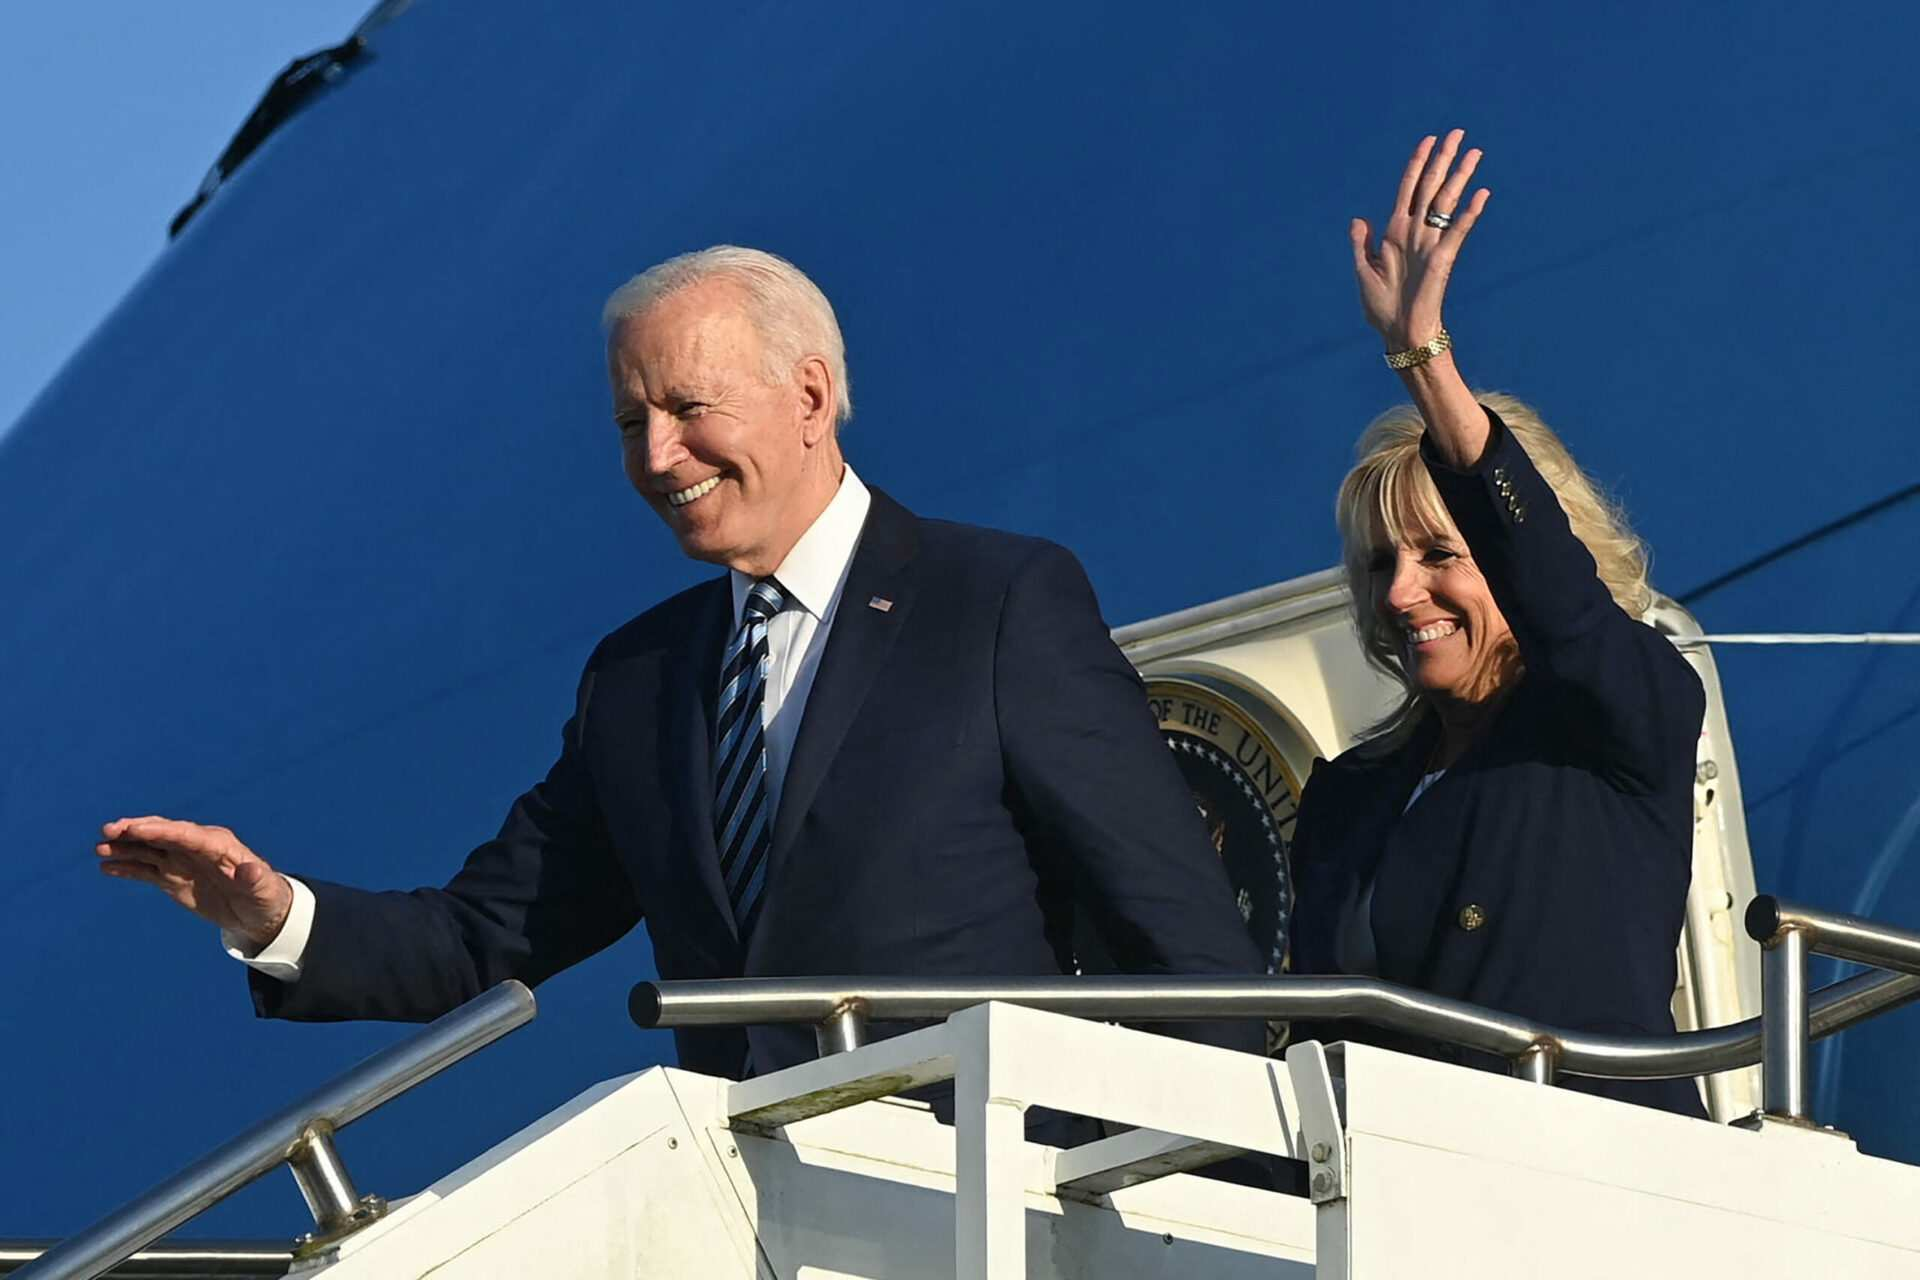 Biden joins NATO summit at pivotal moment for alliance | American Military News